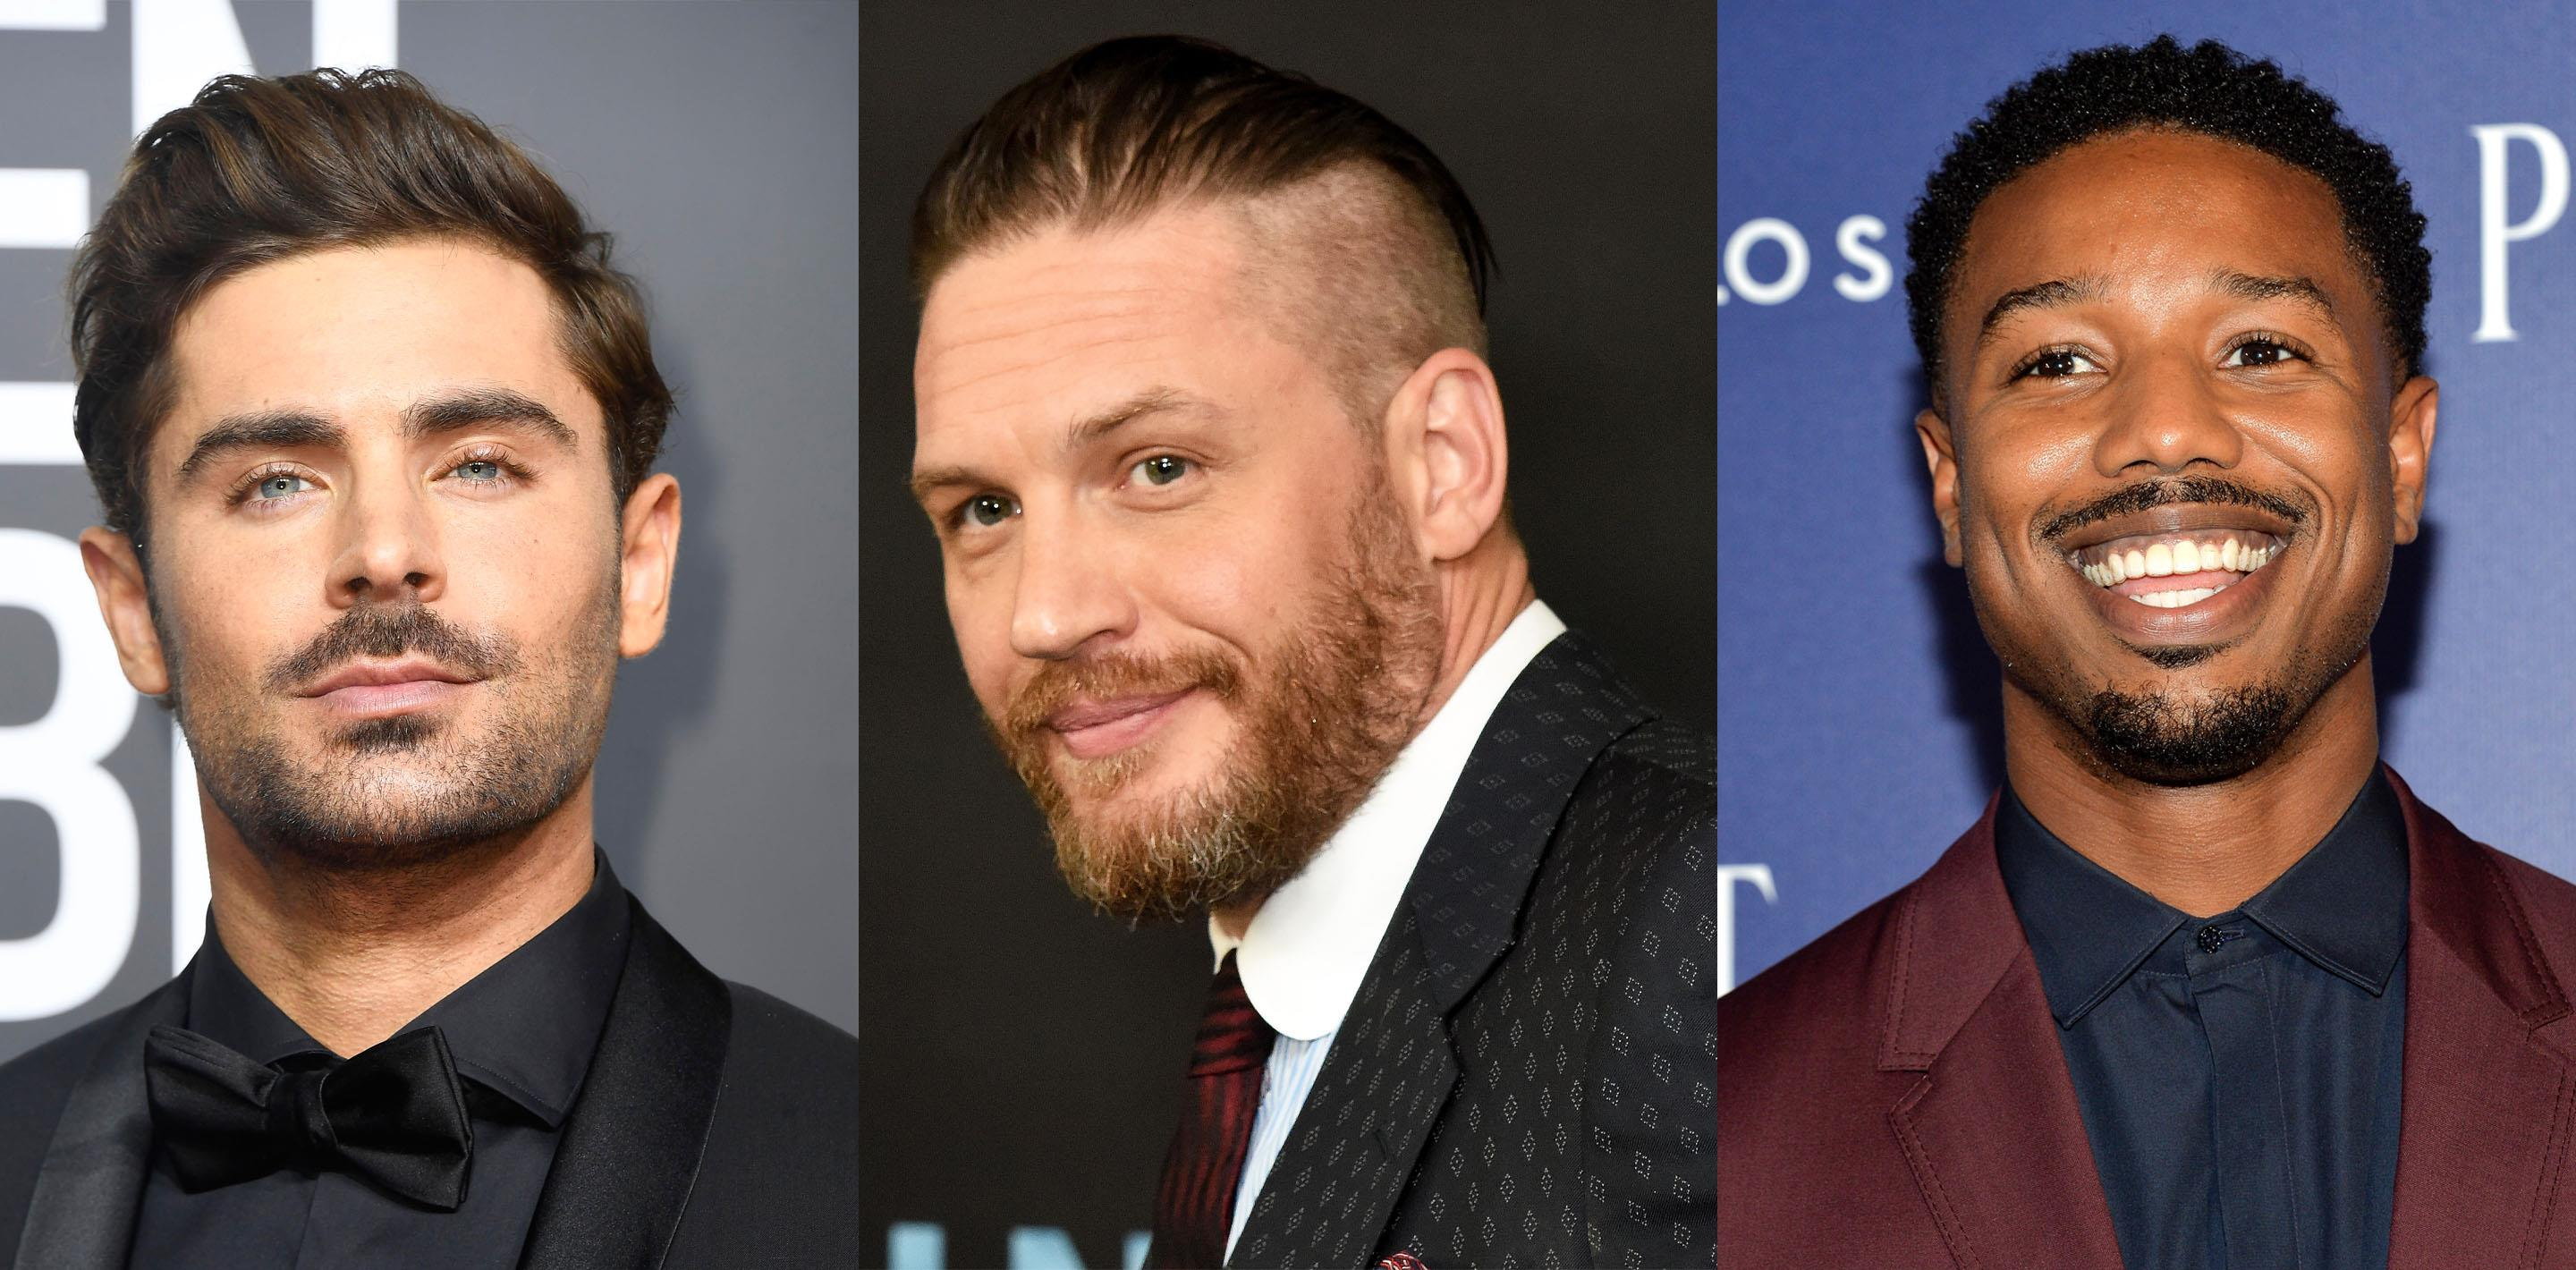 How To Get Beard Styles Like Your Favourite Celebrity